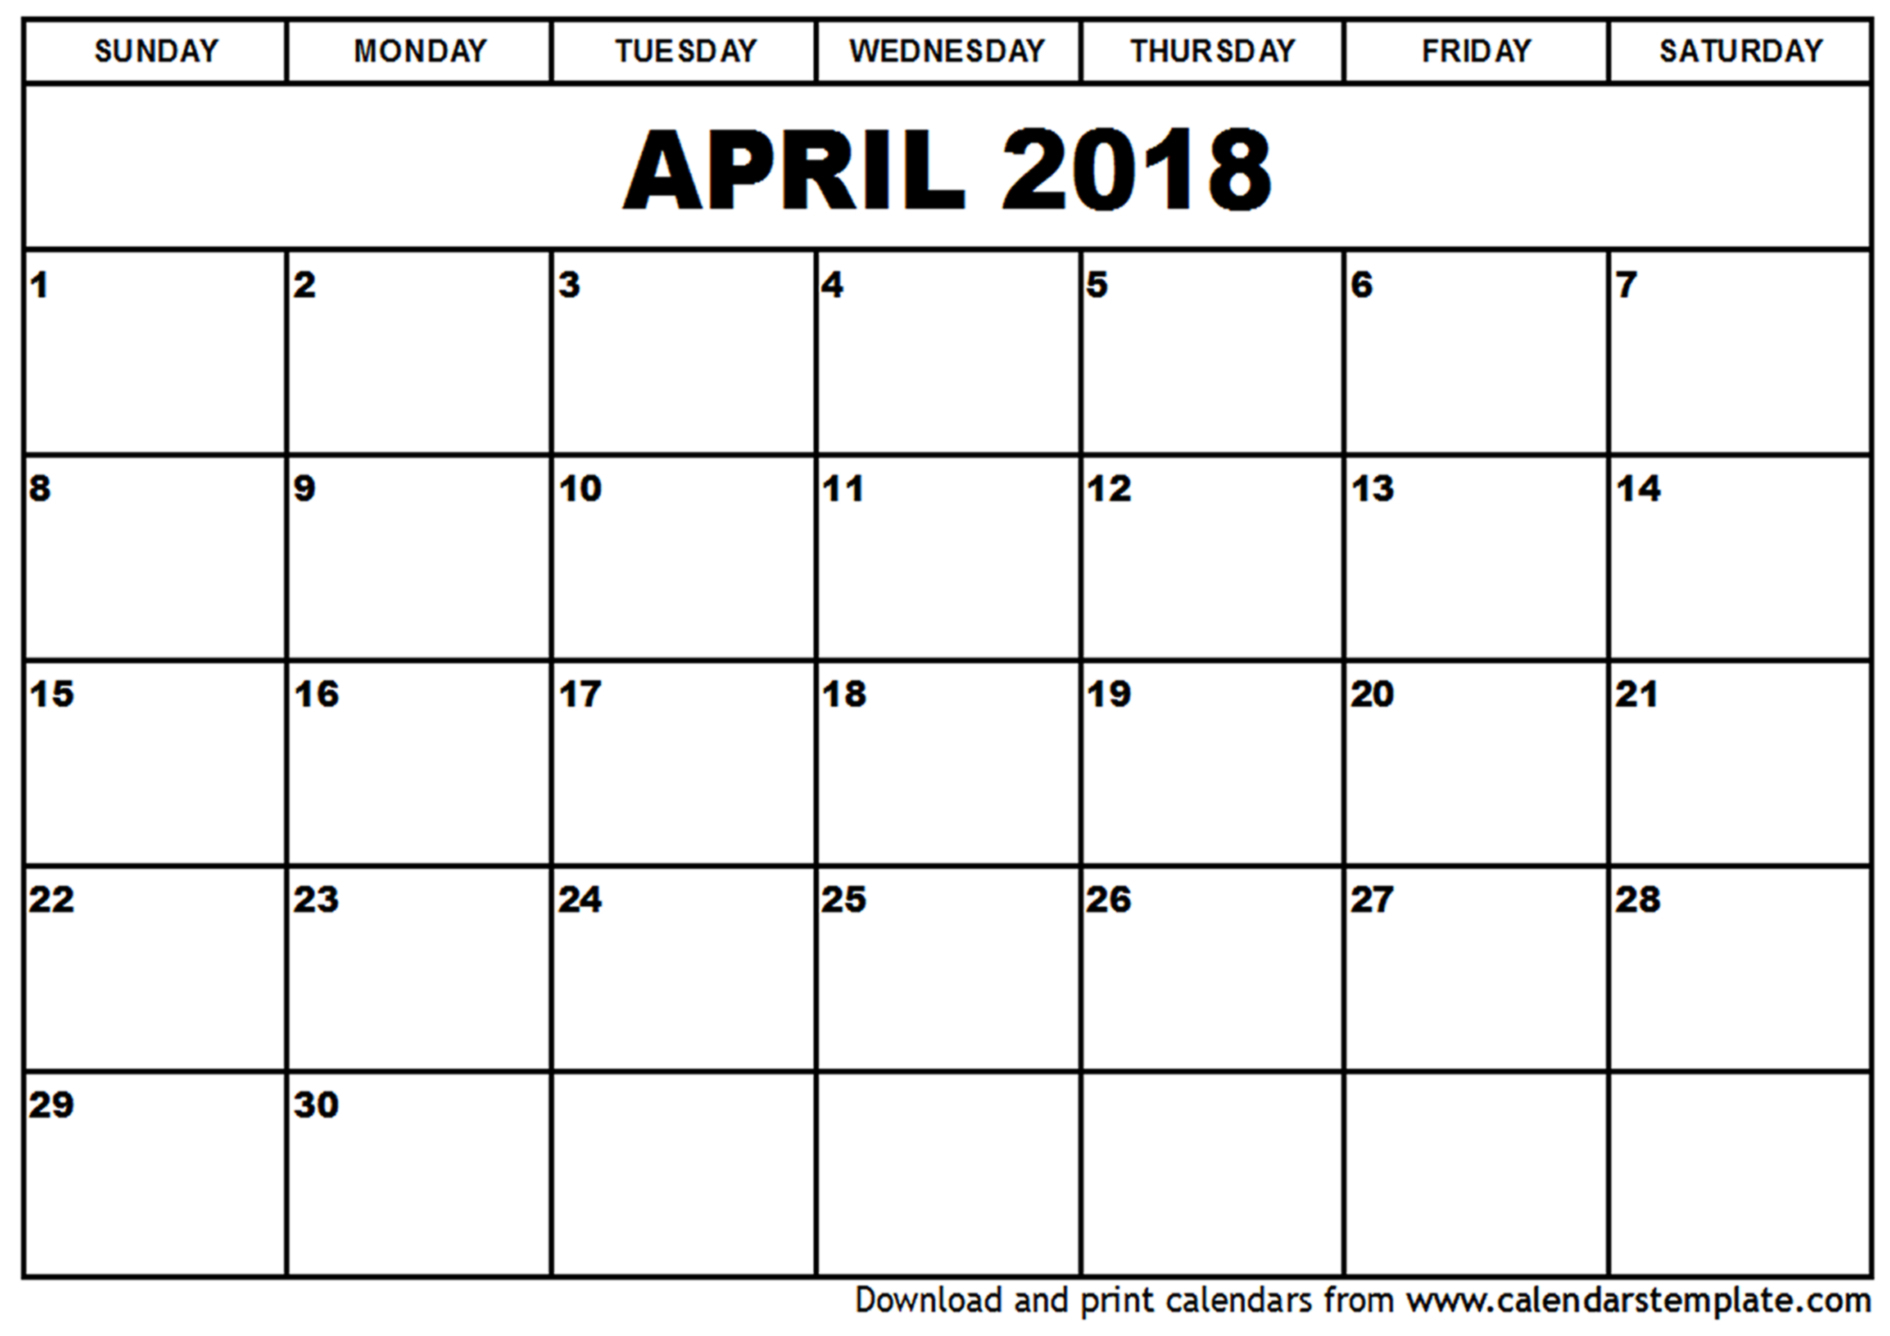 Printable April 2018 Calendar Holidays - Free Printable